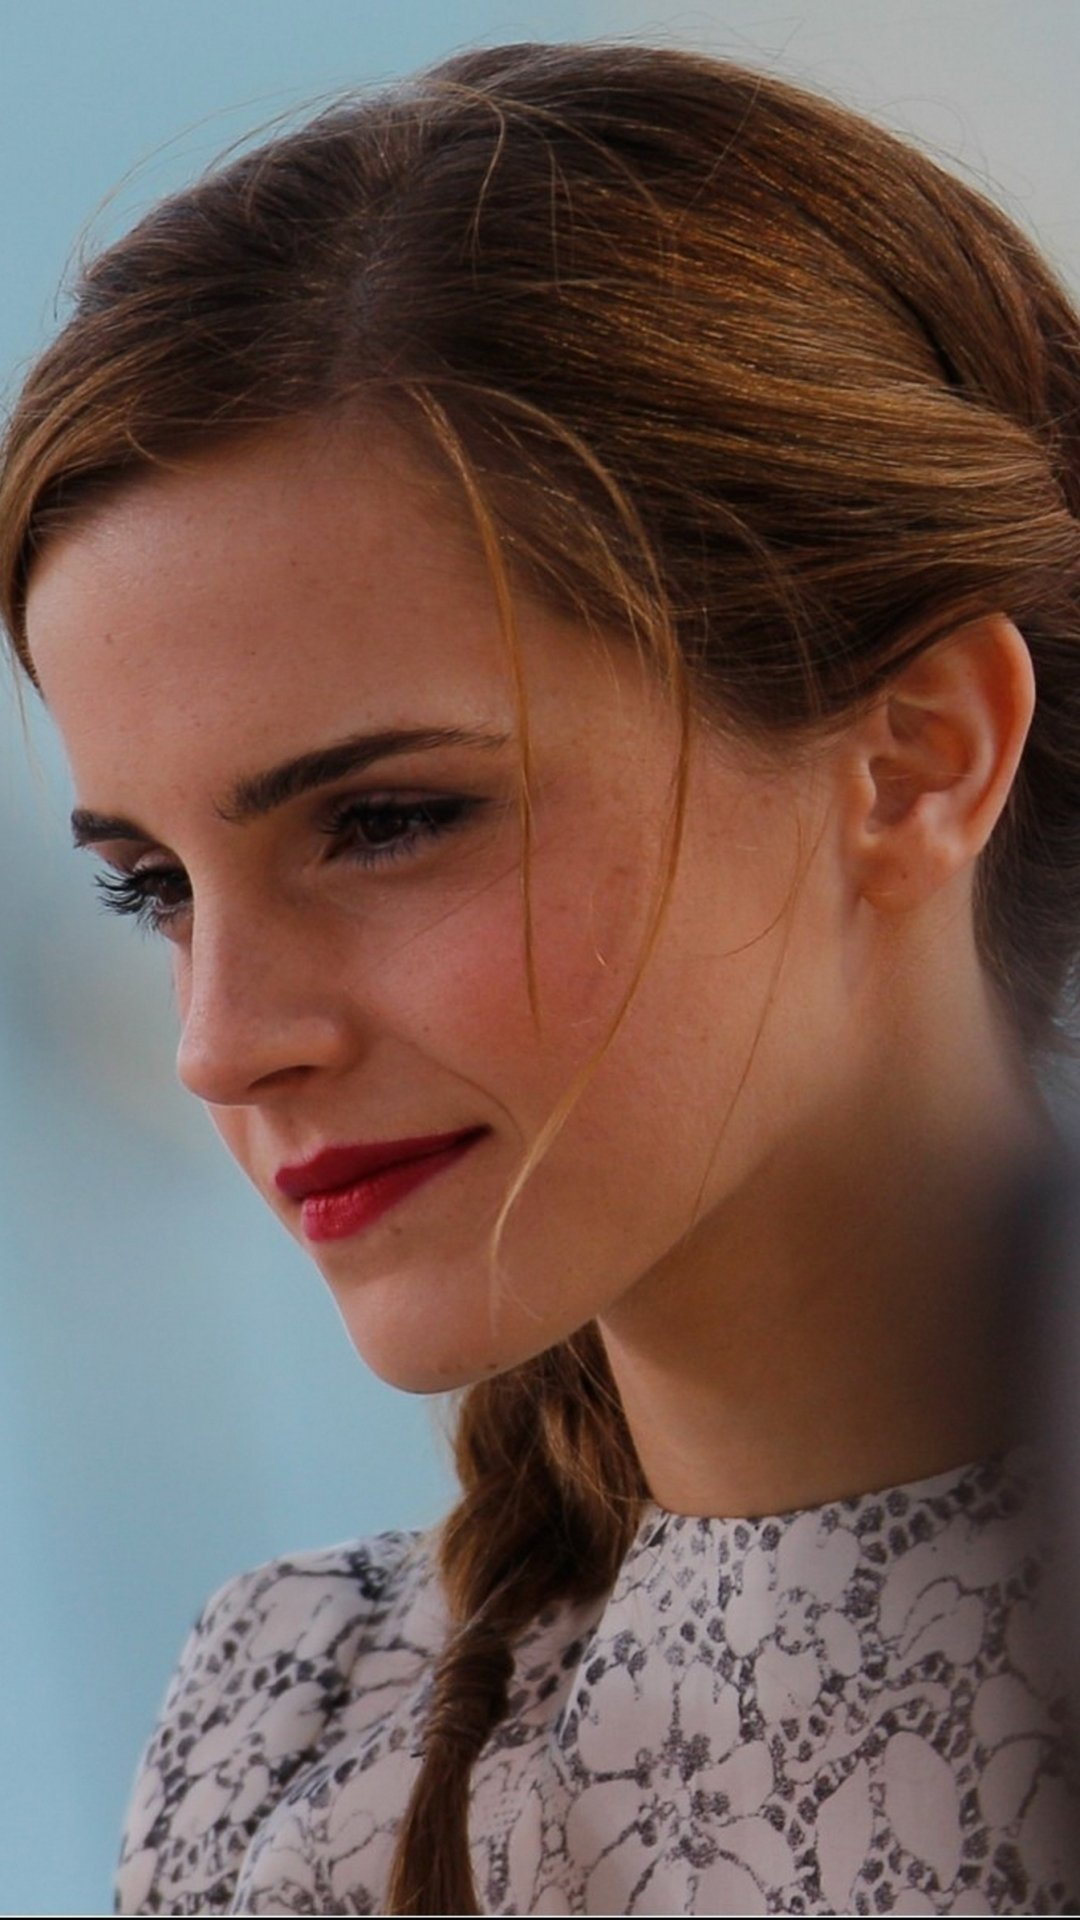 Emma Watson iPhone Wallpaper